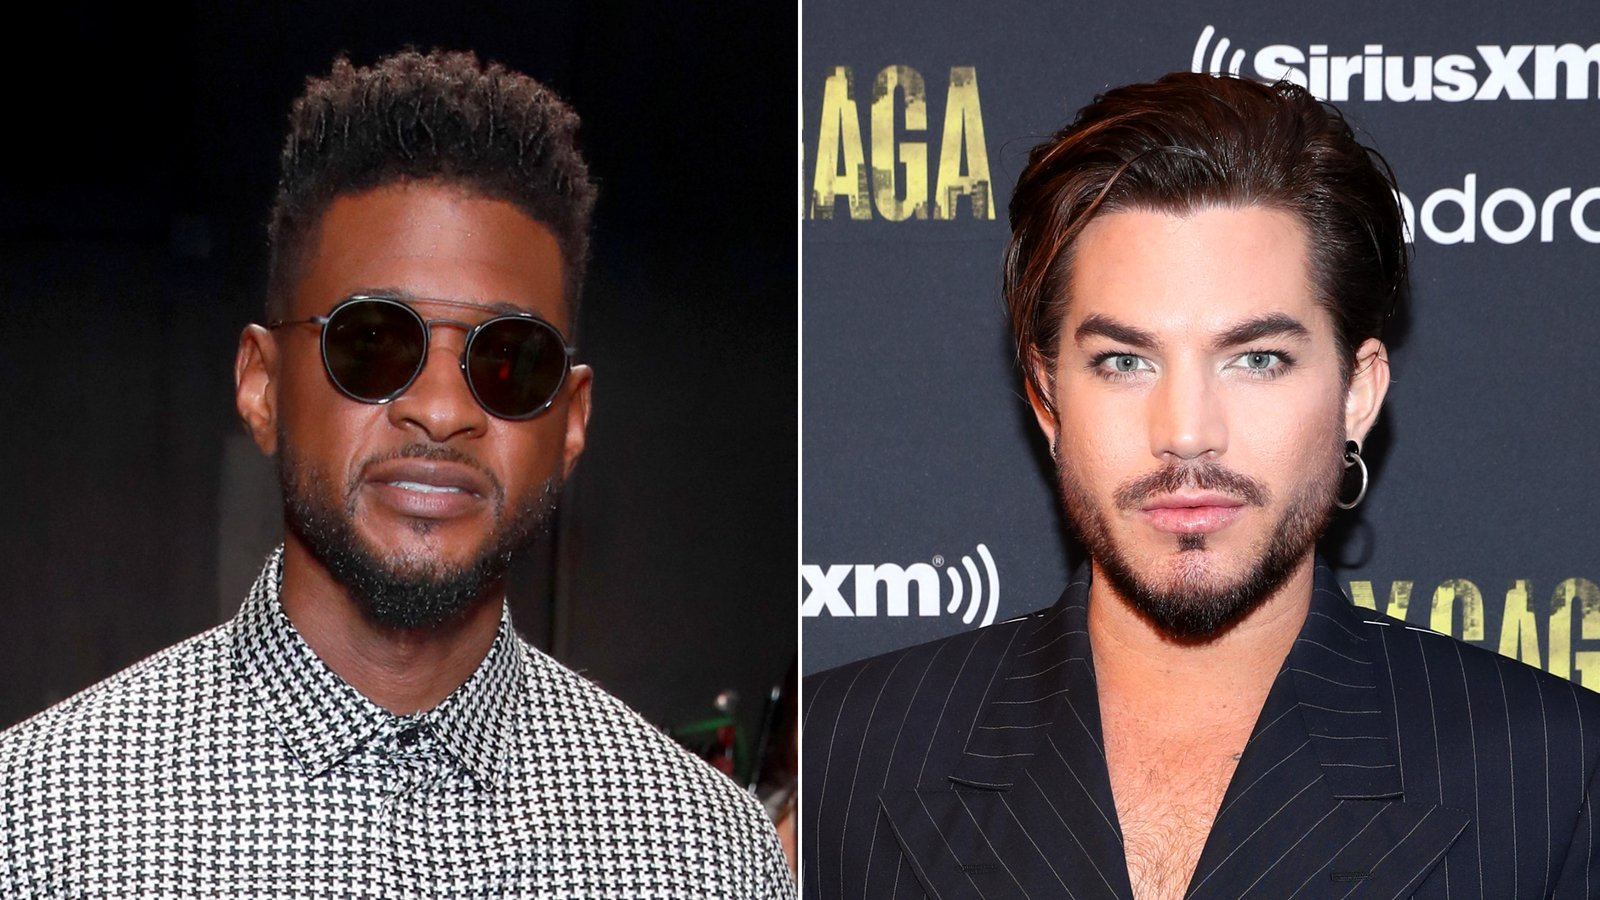 Beverly Hills real estate agent accused of burglarizing homes of celebrities including Usher and Adam Lambert